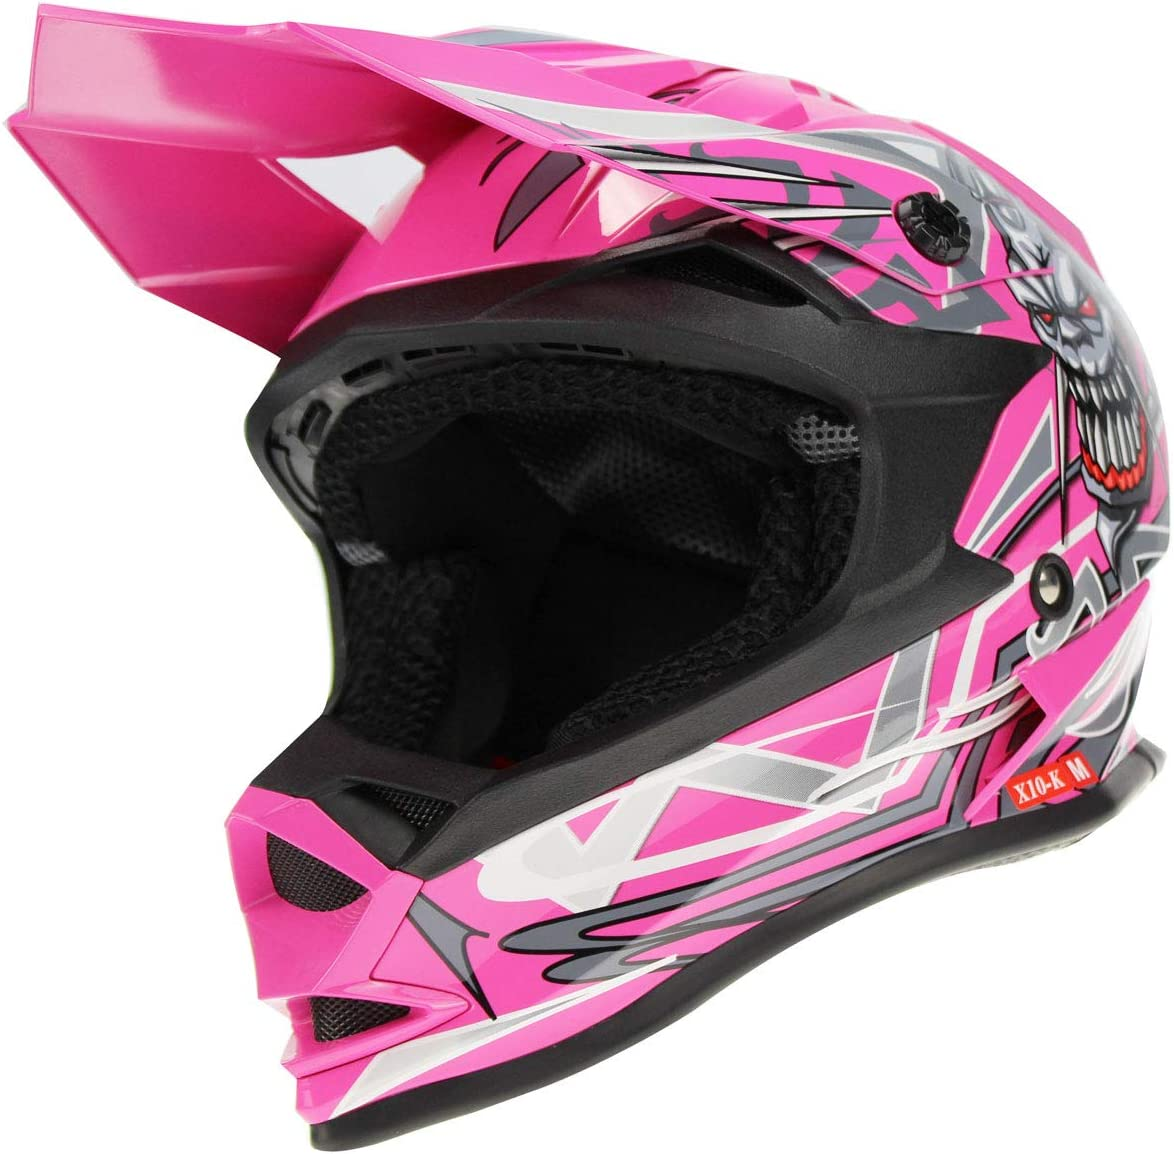 M 3GO X10-K Graphic Motorbike Helmet Pink Motocross Kids Quad ATV Dirt Enduro Children Off Road BMX MTB Wear 49-50 CM